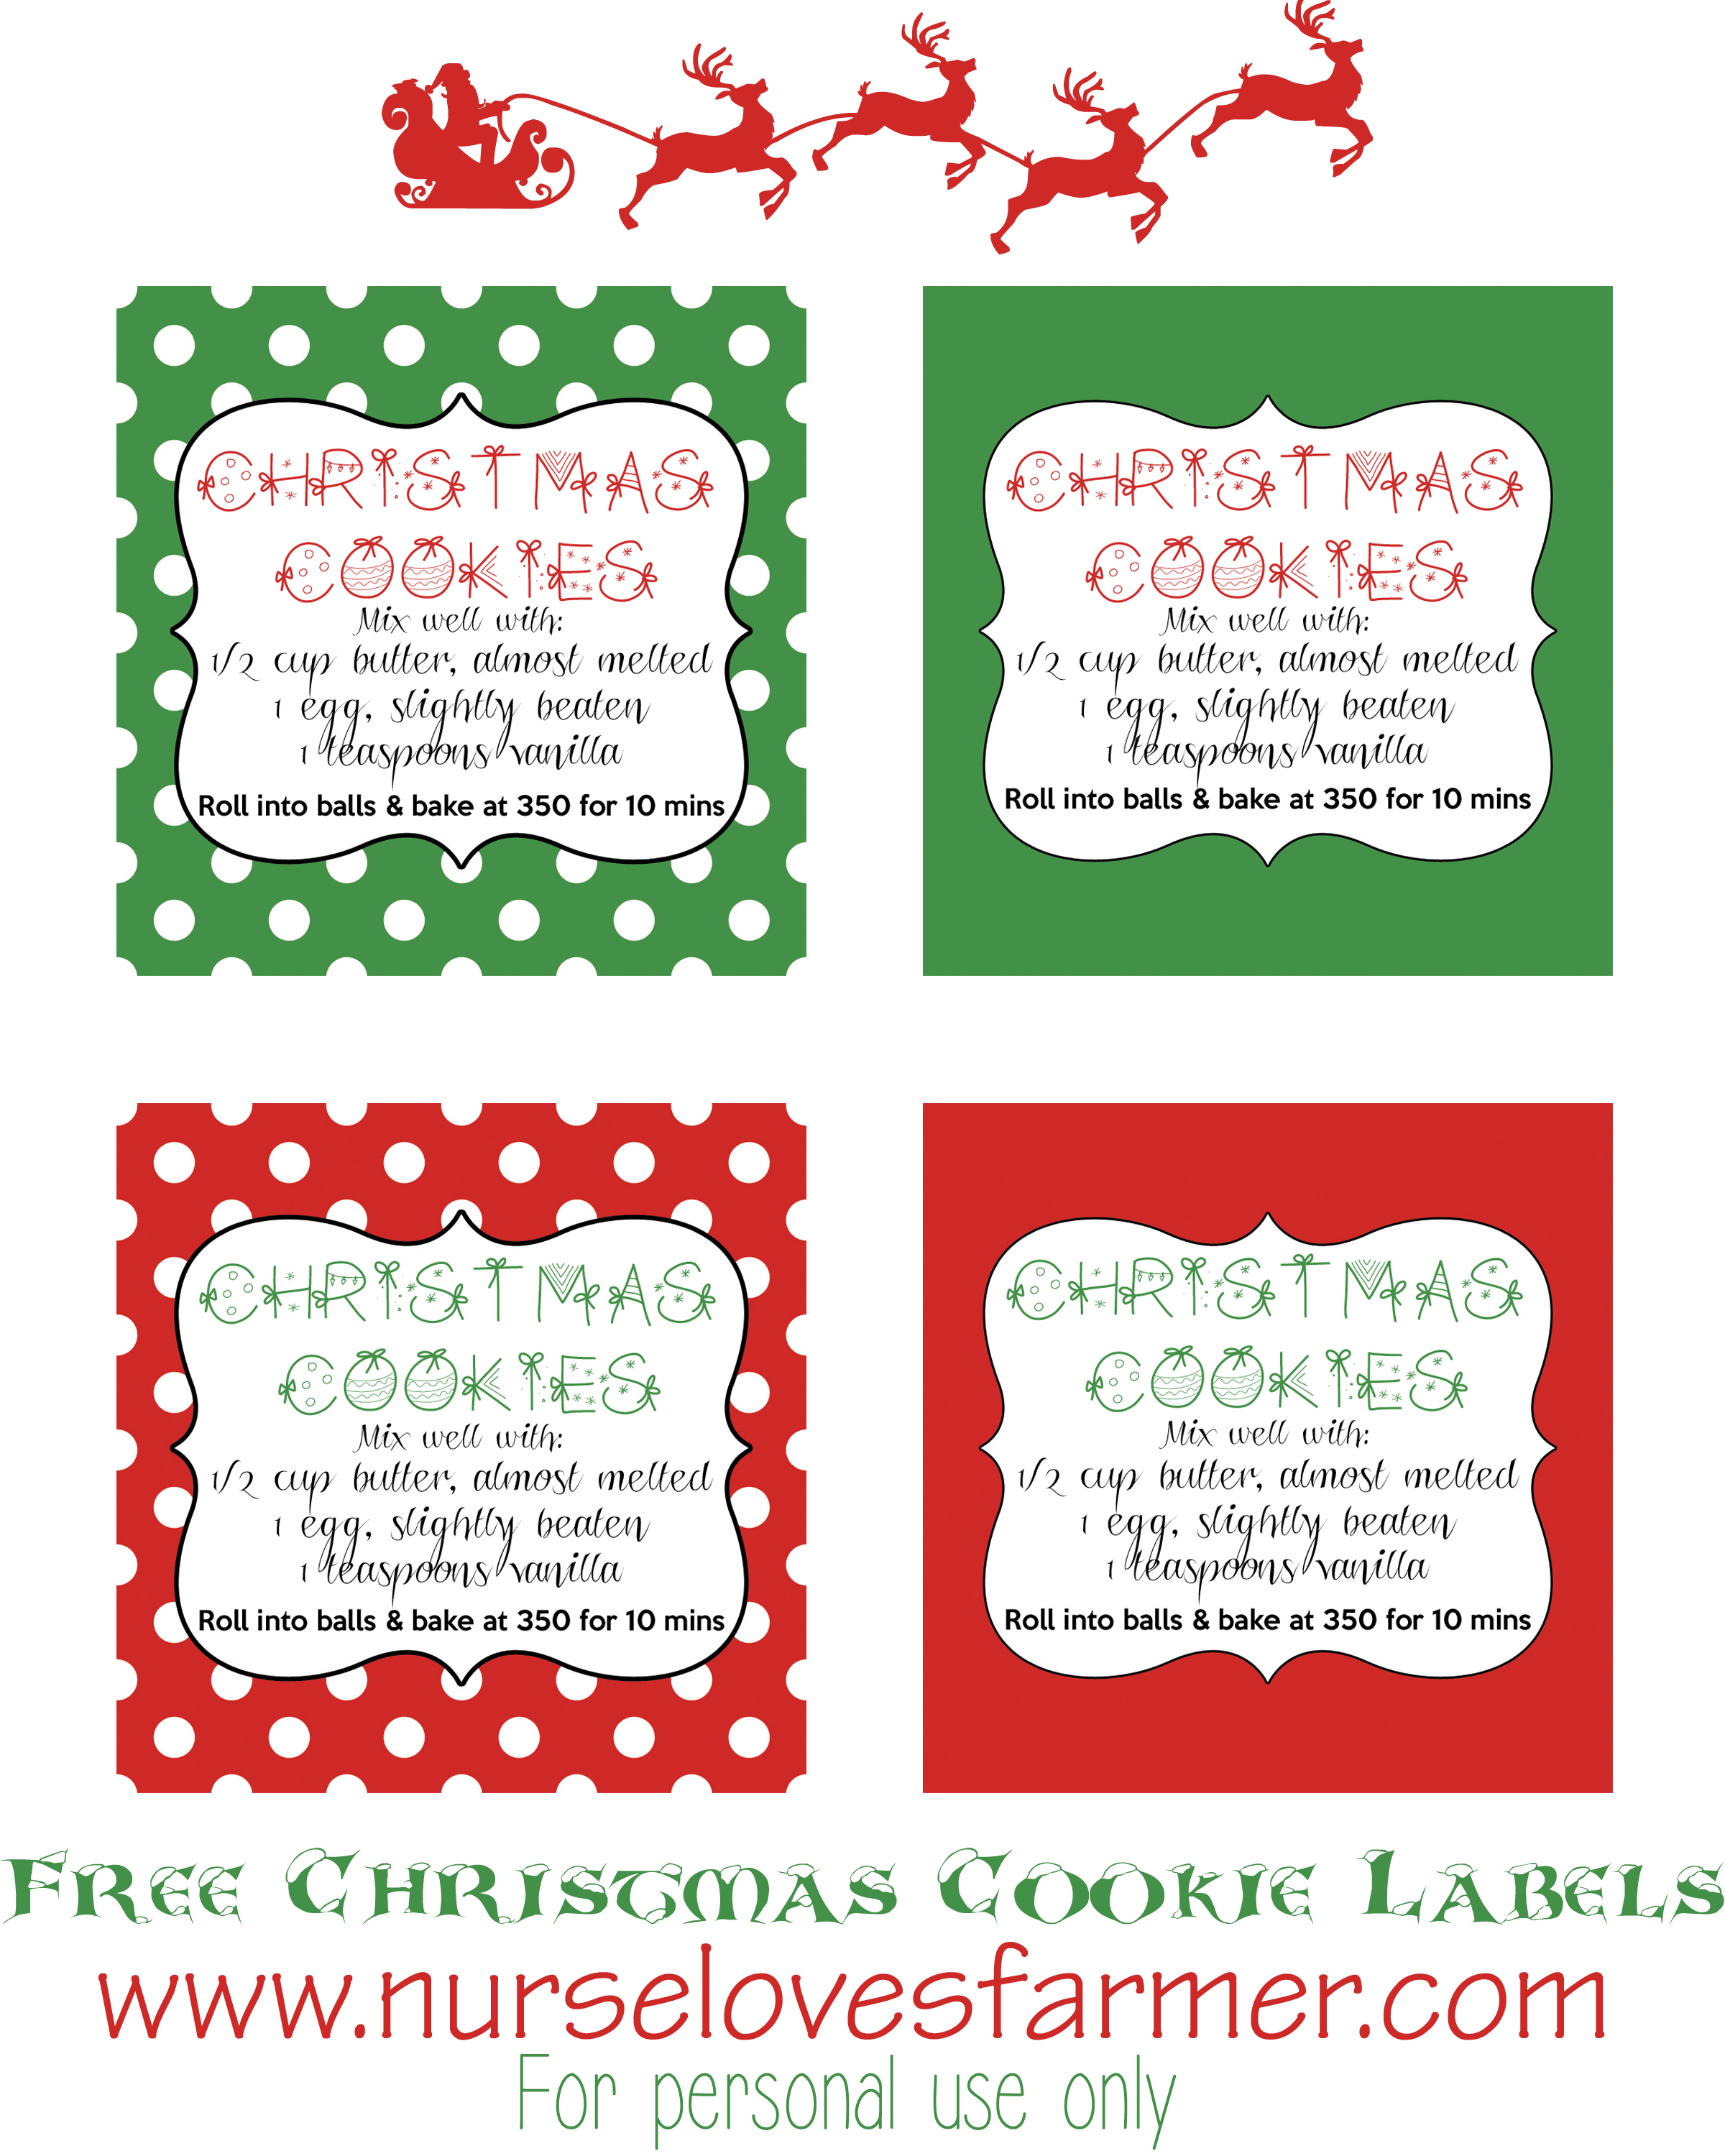 7 Images of Christmas Cookie Labels Free Printables